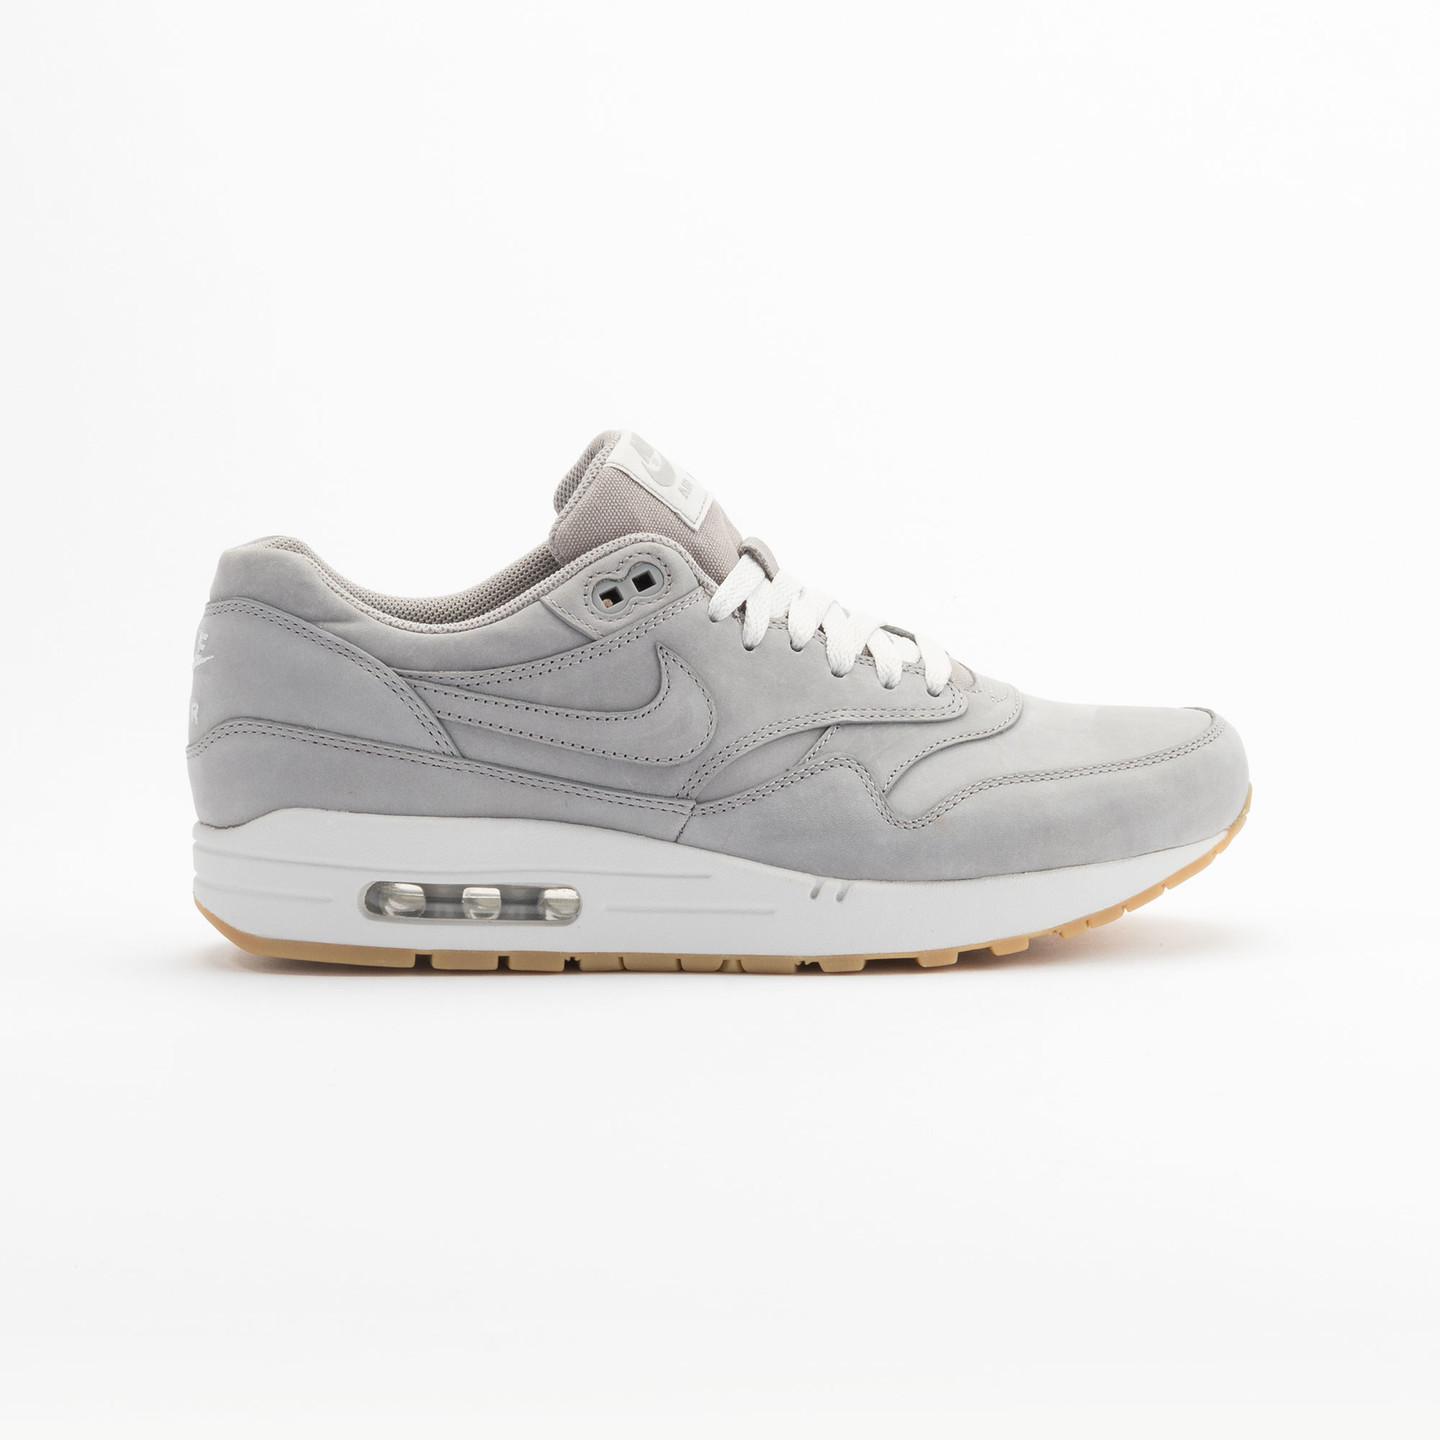 Nike Air Max Leather Premium Medium Grey 705282-005-45.5